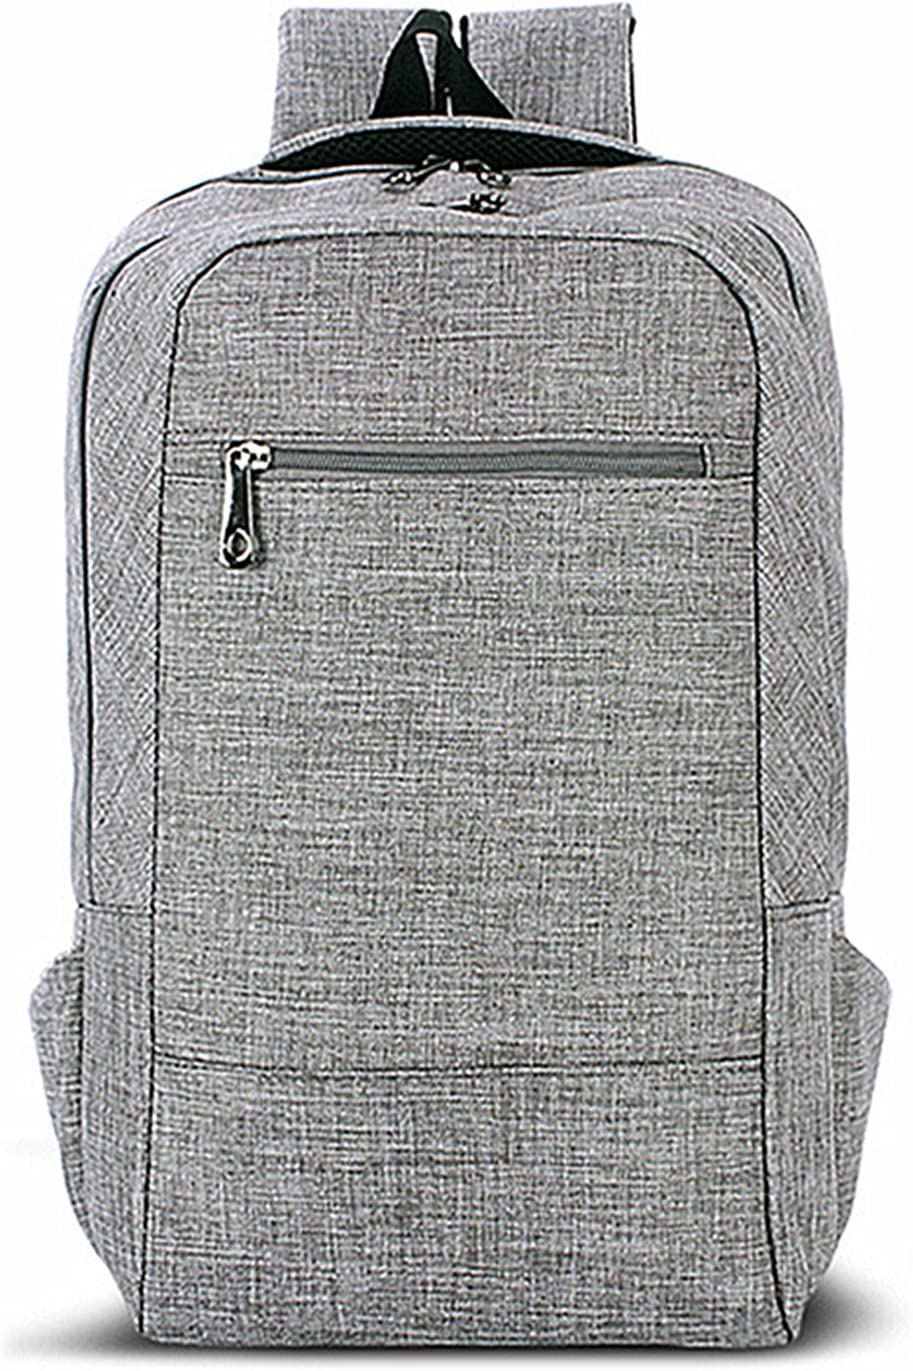 Laptop Backpack,Tincon-Z 15 15.6 Inch College Backpacks Lightweight Travel Daypack – Grey Grey